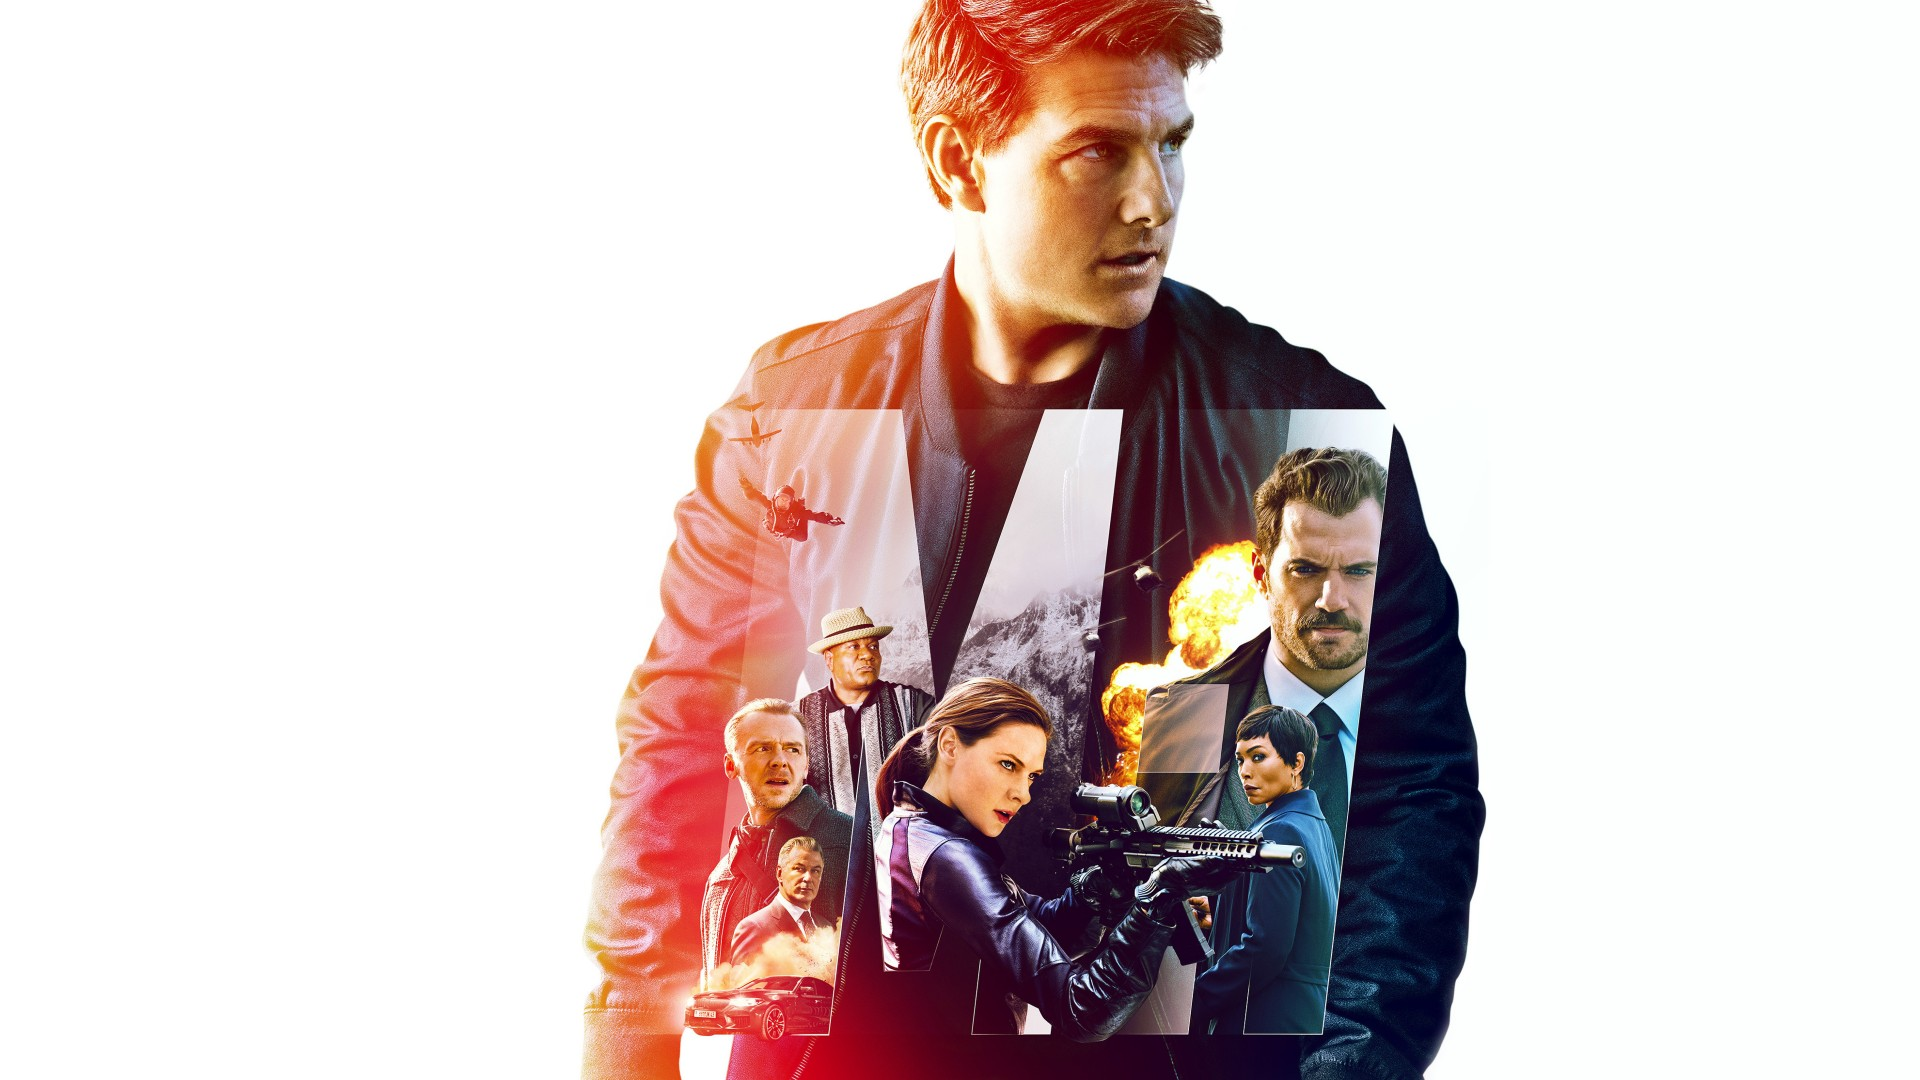 mission-impossible-fallout-1920x1080-tom-cruise-2018-4k-8k-13662.jpg